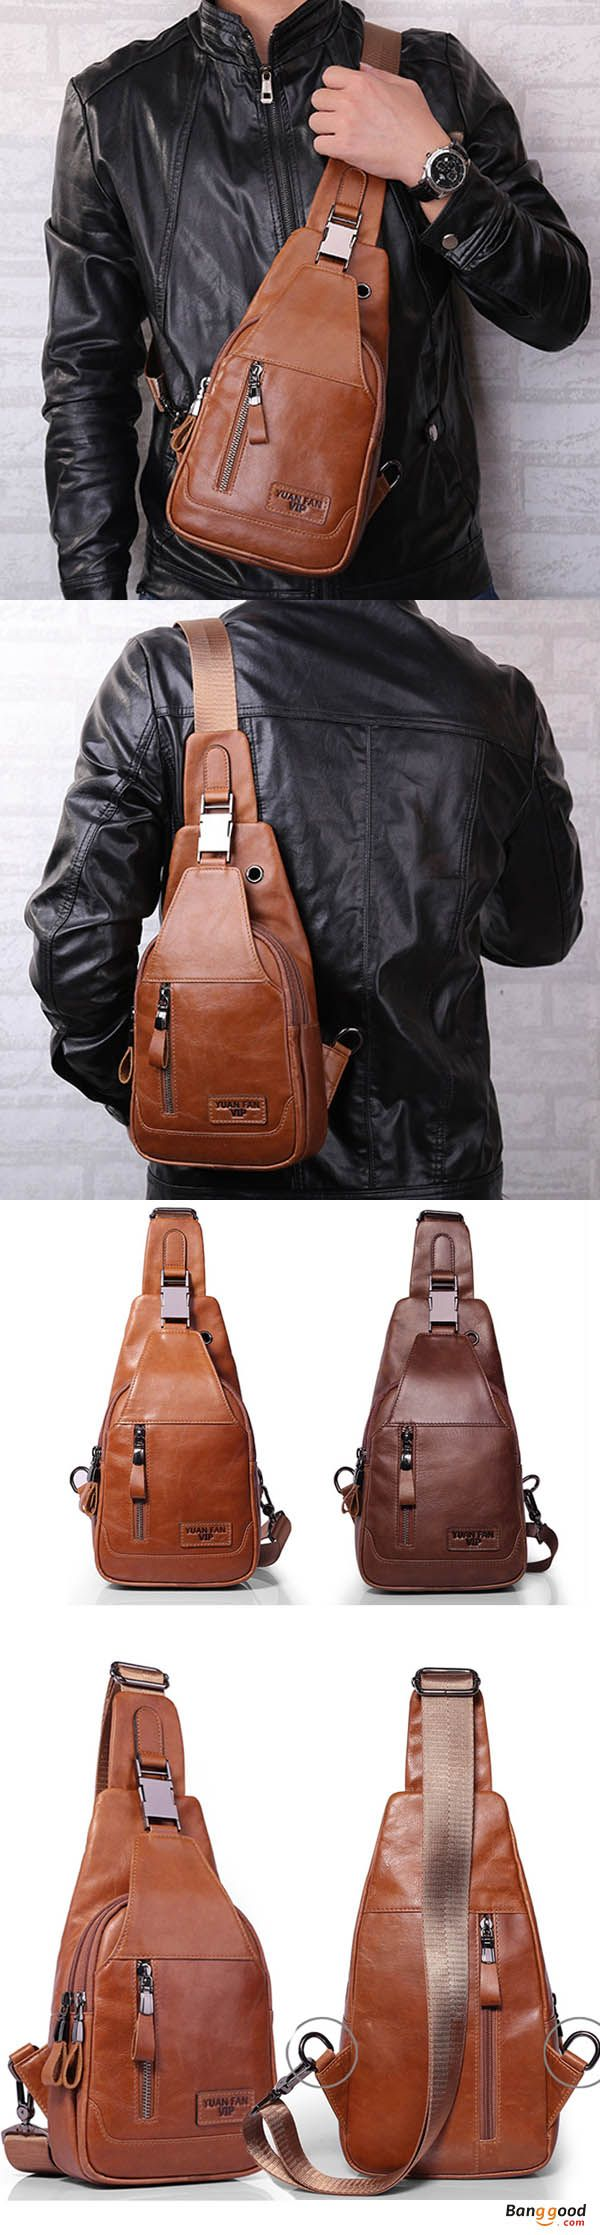 US$39.99 + Free shipping. Ekphero® Men Casual Genuine Leather Oil Wax Chest Bag Crossbody Bag. Khaki & Coffee >>> To view further, visit now.